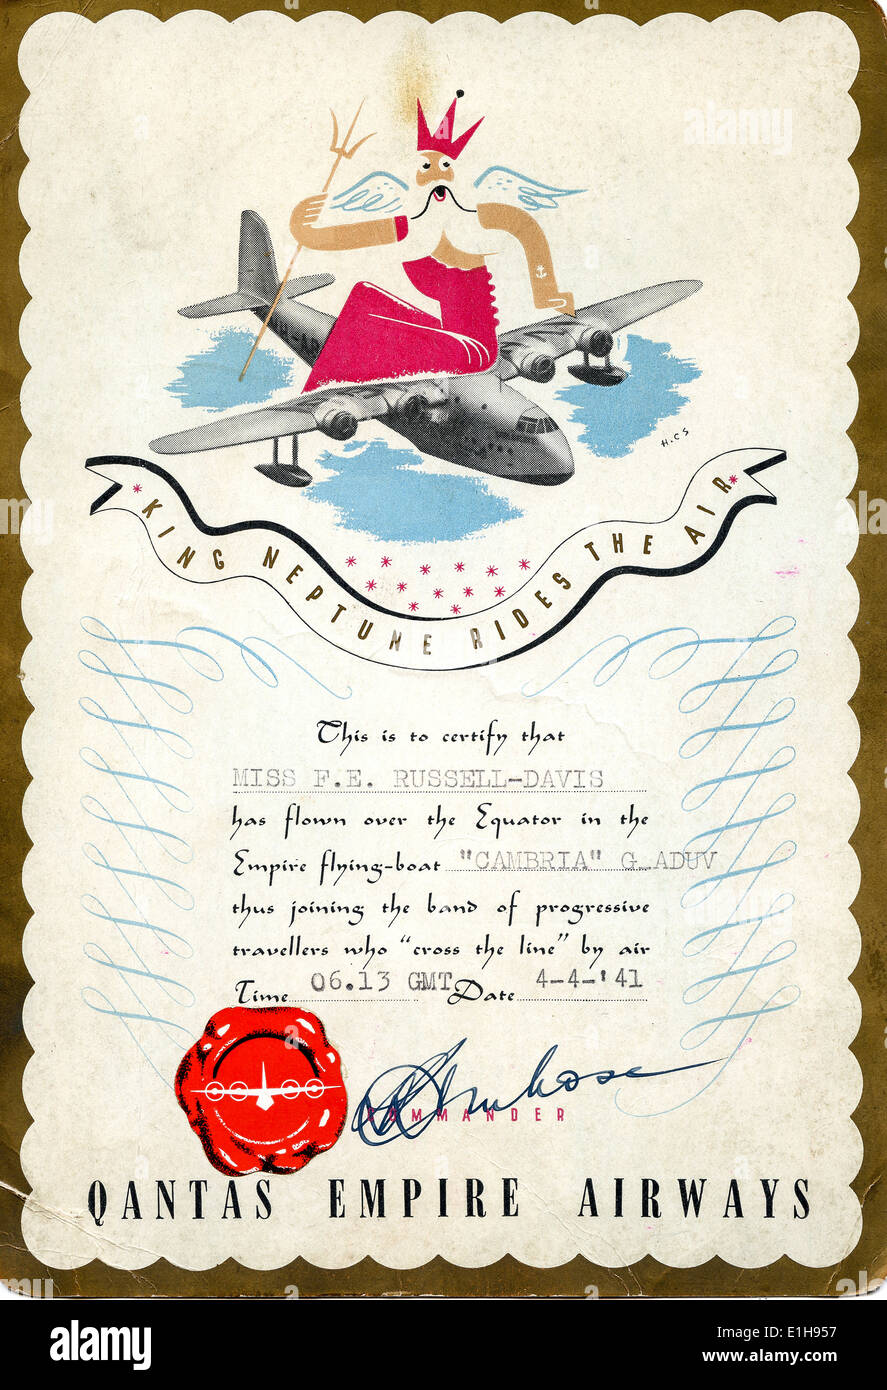 9169abb0153 Historic flying boat certificate issued by QUANTAS Empire Airways in  Australia commemorating crossing the Equator by